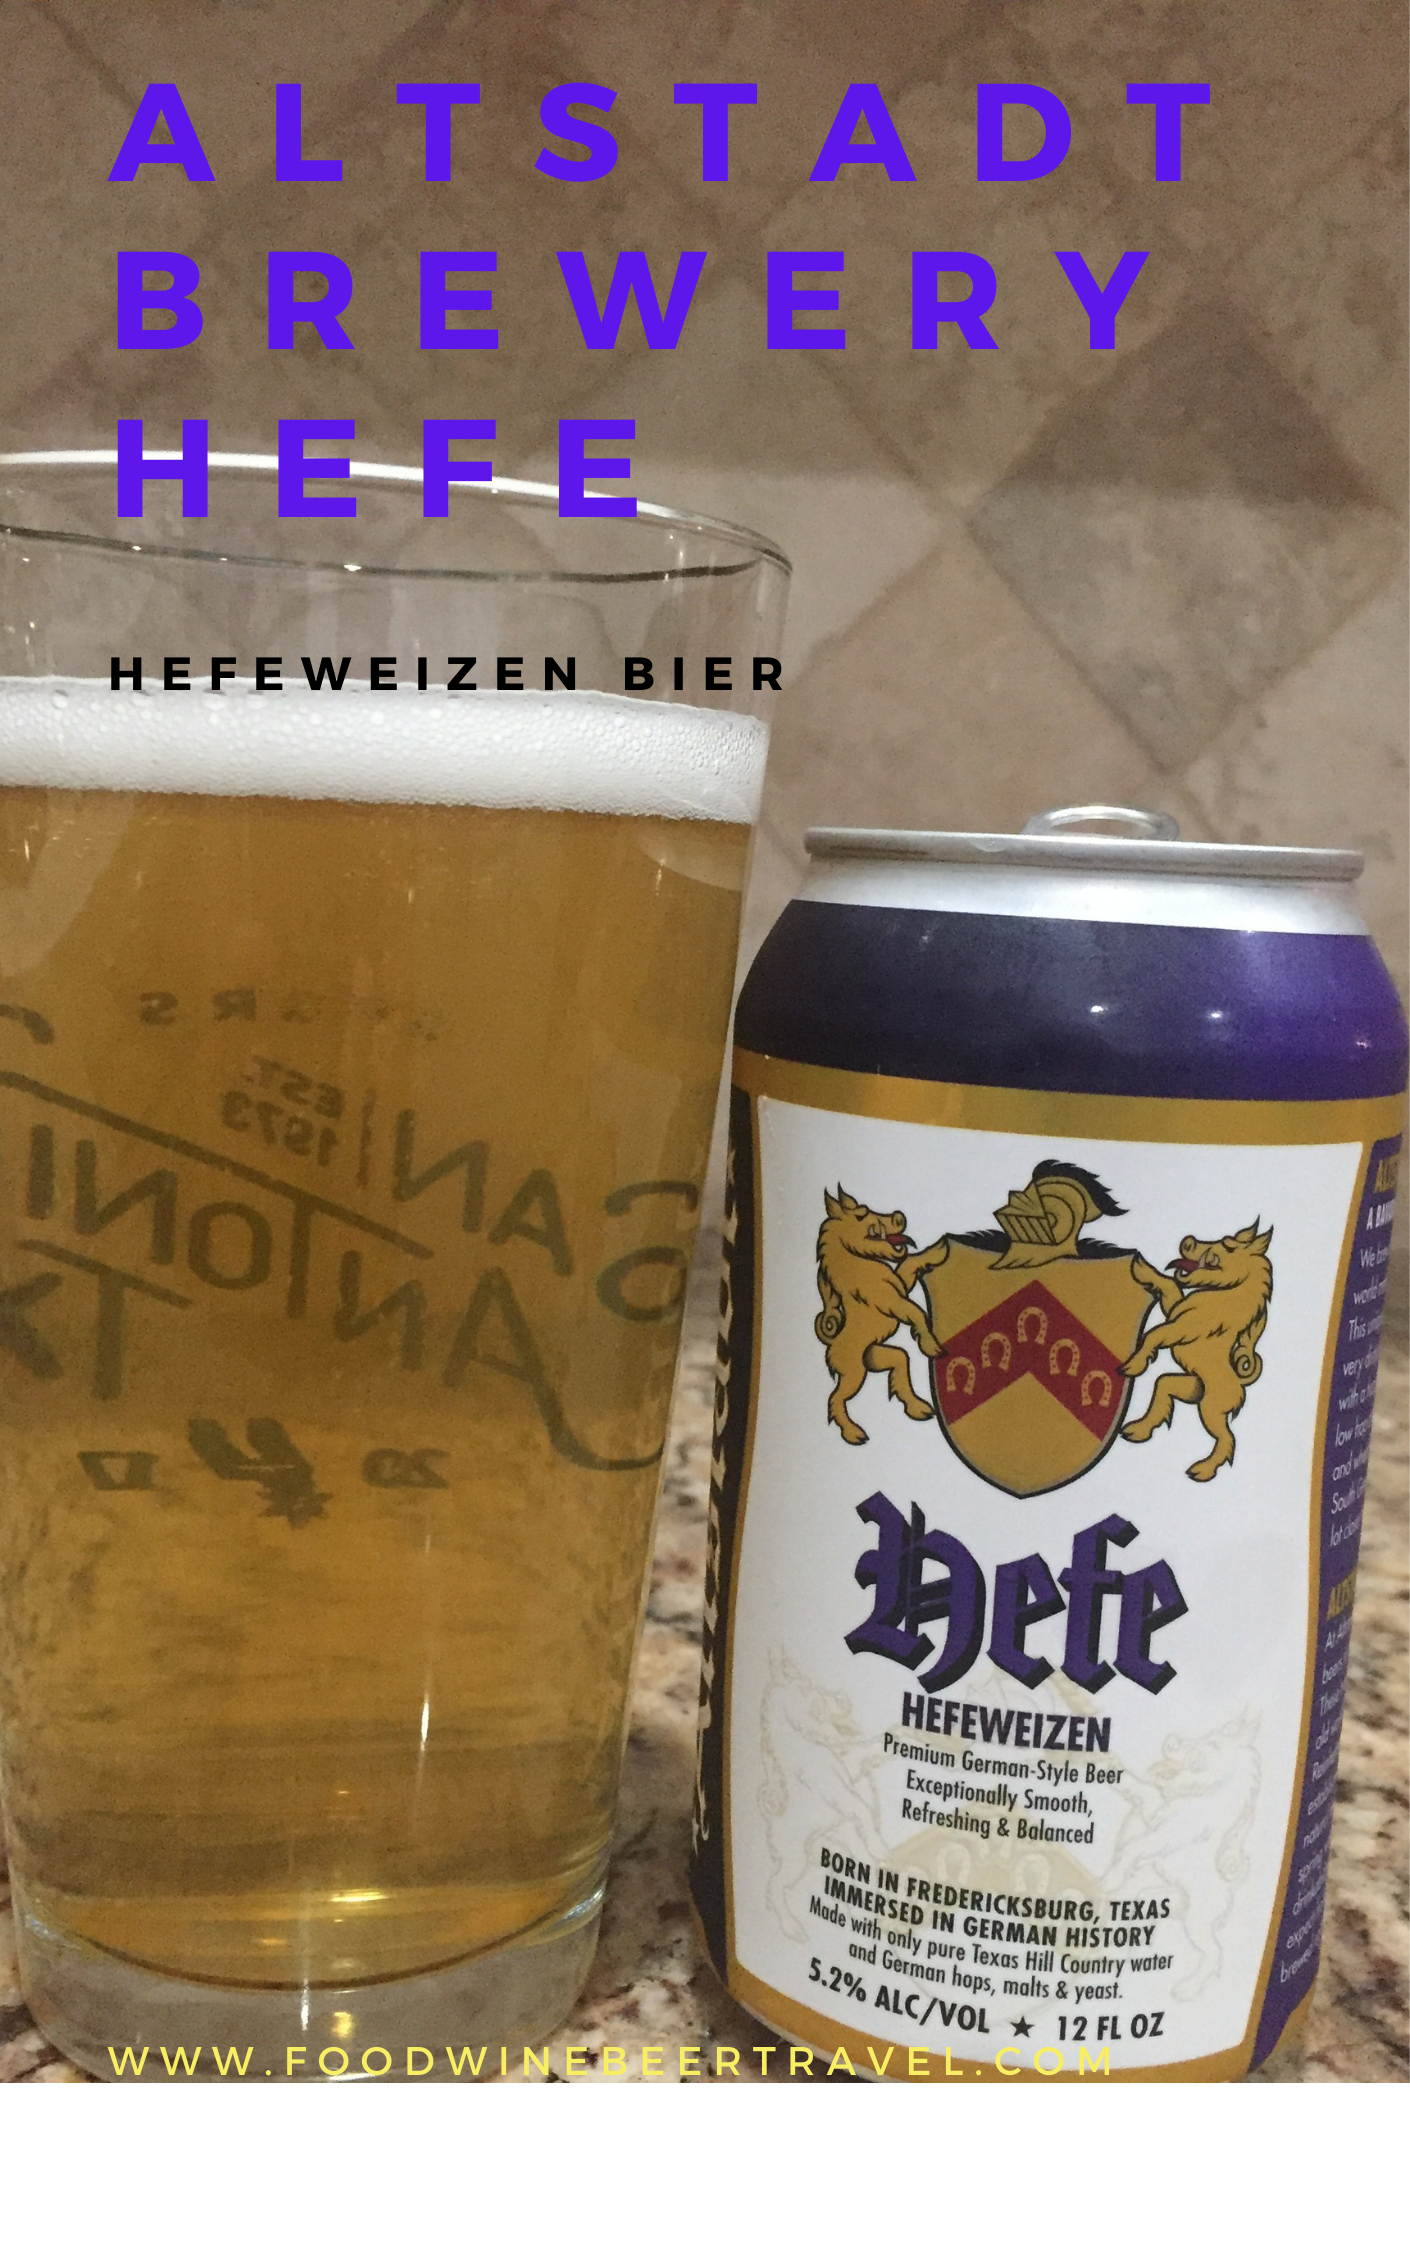 A pinterest pin of A can of Hefe, a hefeweizen beer from Altstadt Brewery is next to a pint glass filled with a clear golden beer with small white head floating on top.